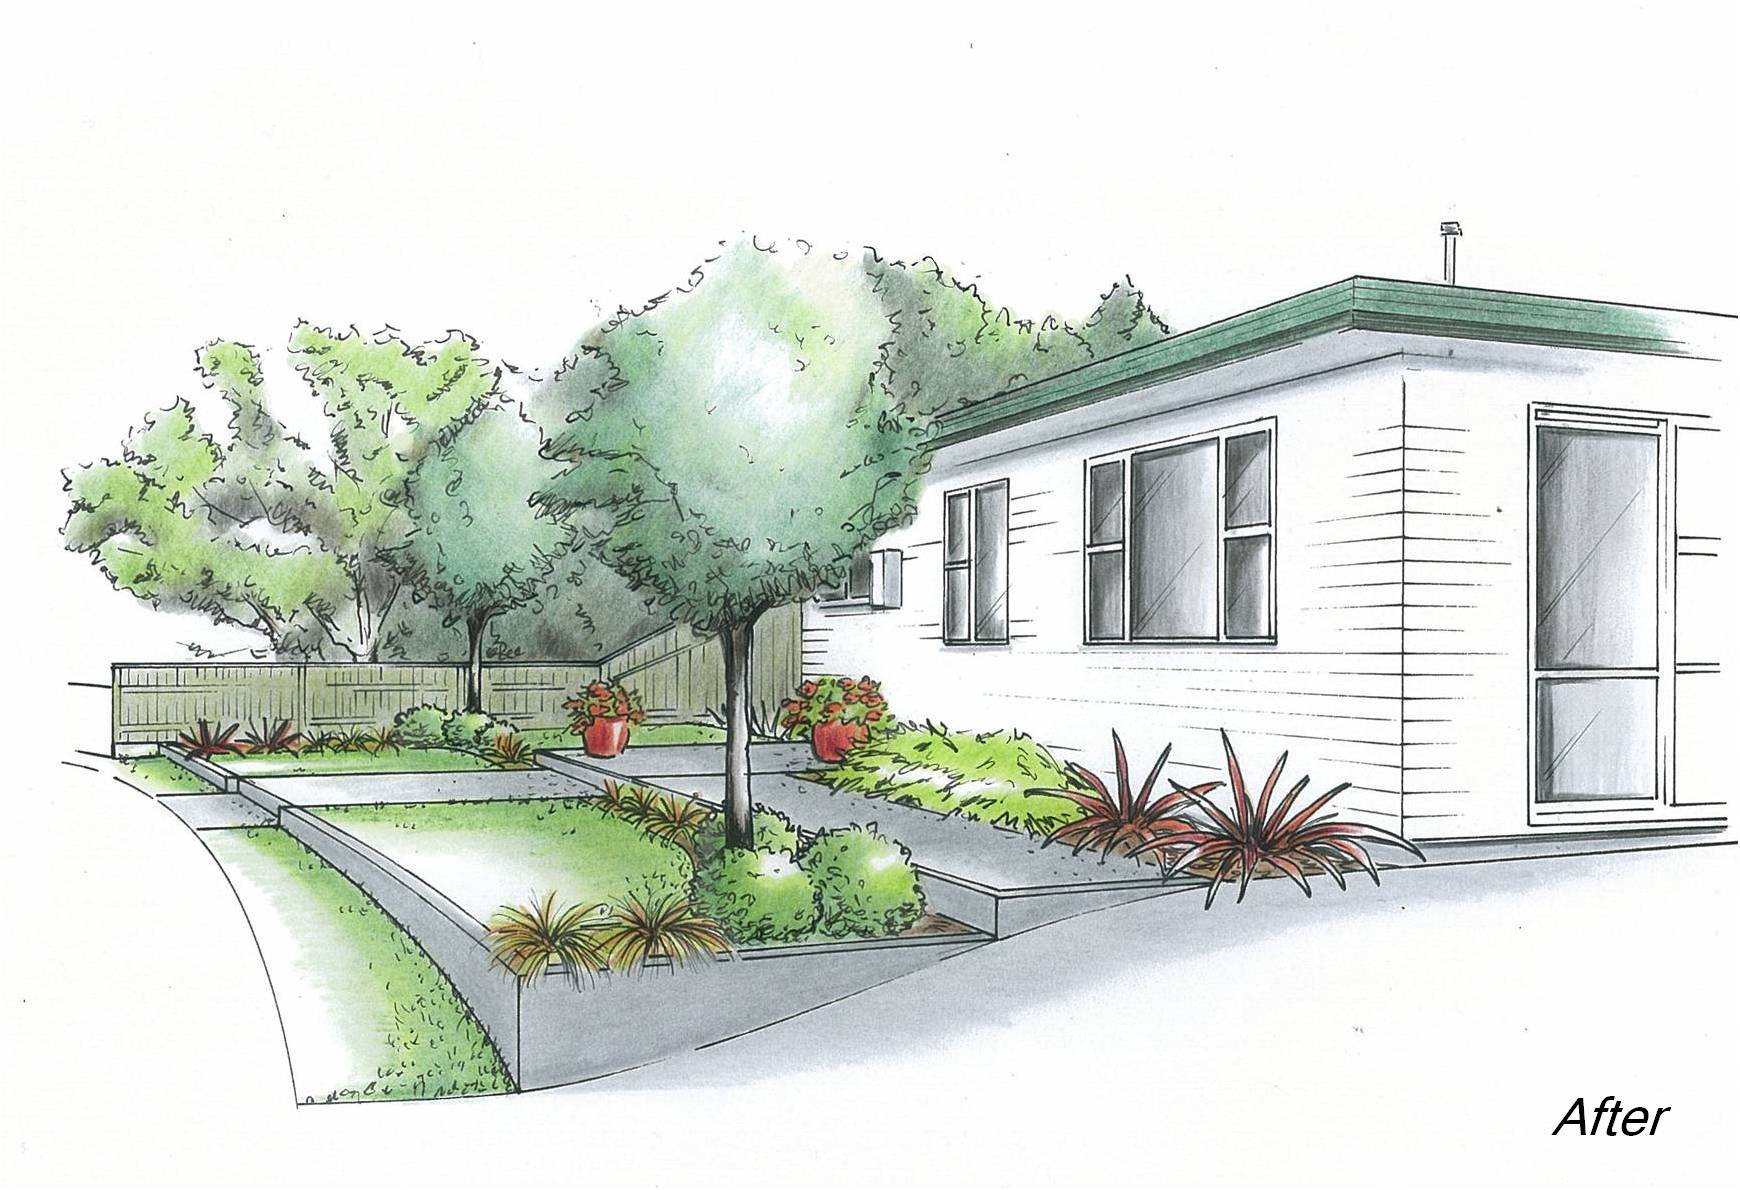 Design for a welcoming front garden